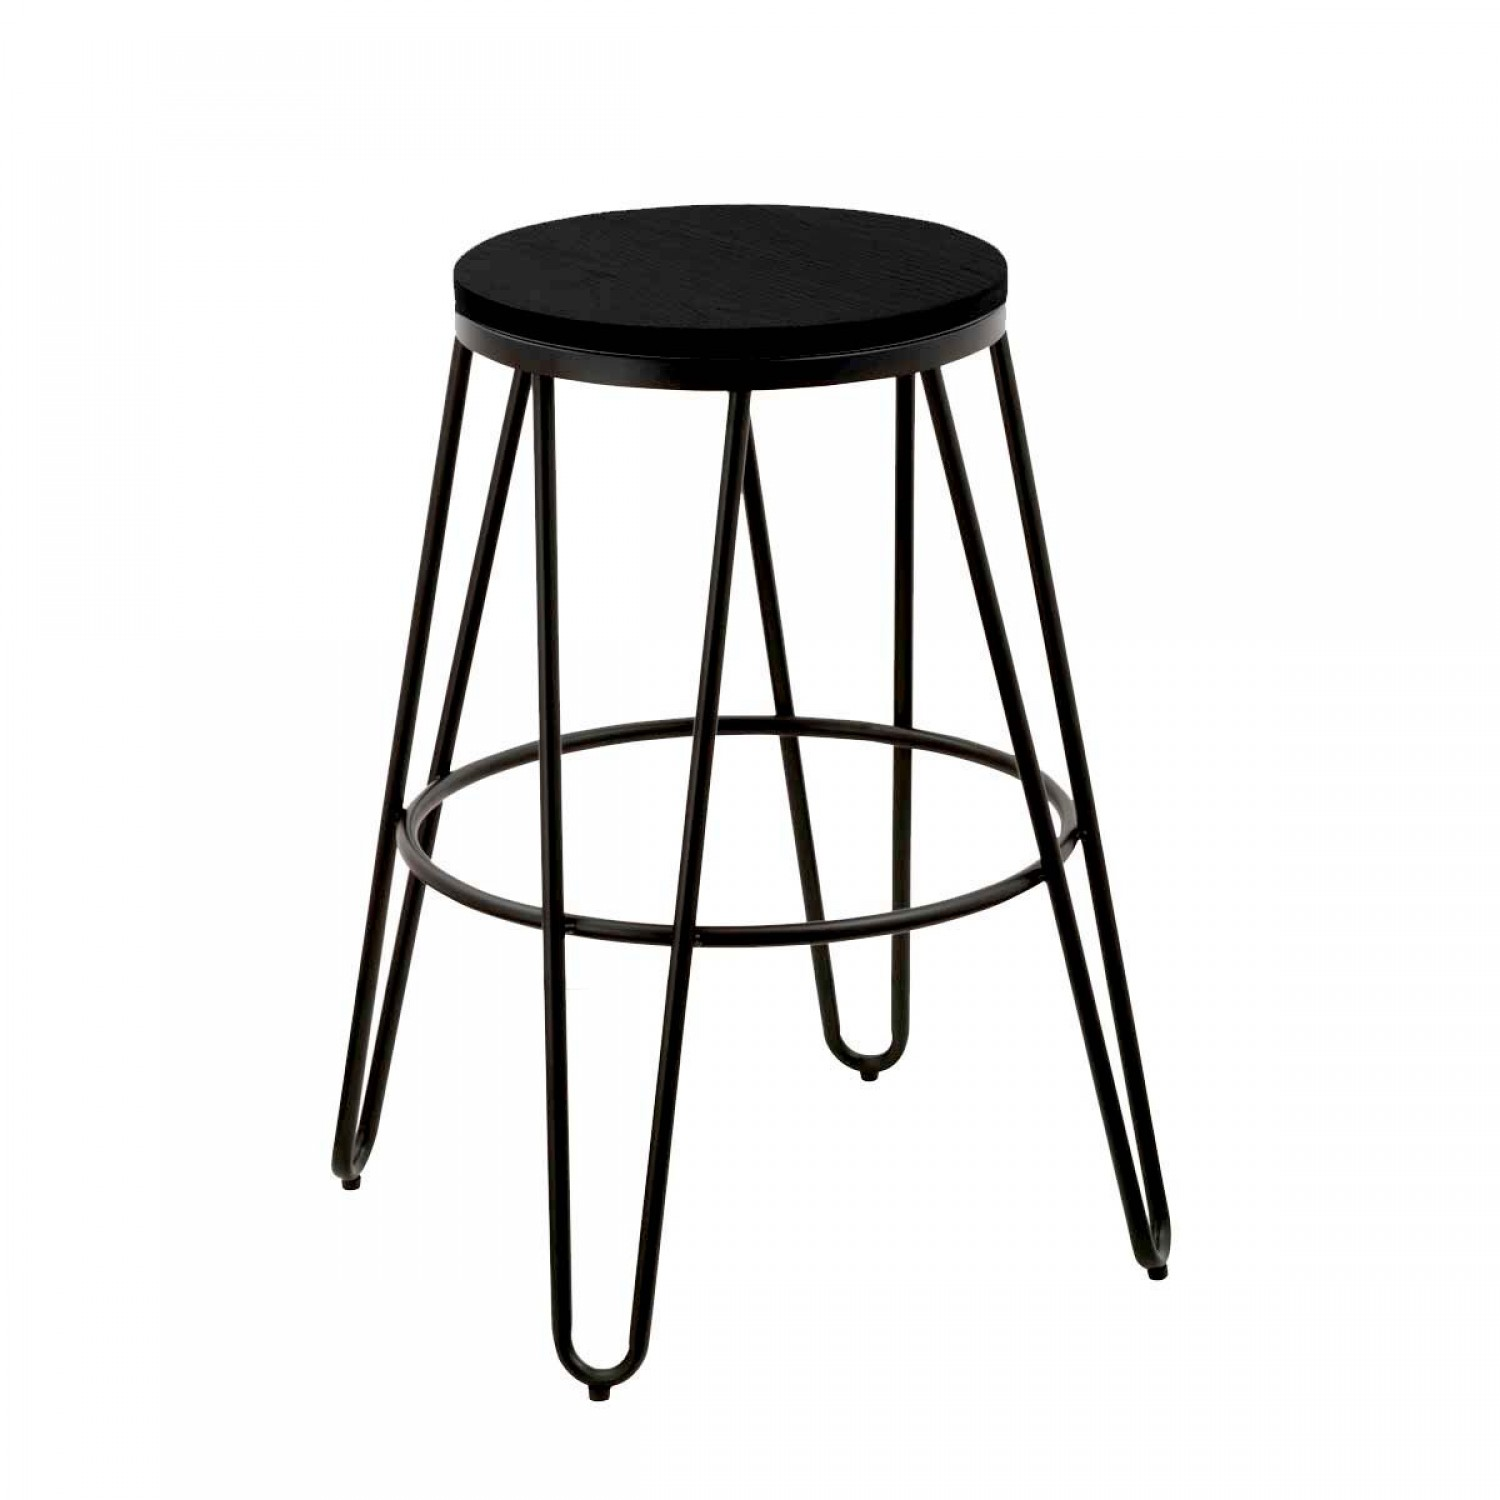 tabouret de bar loft noir lot de 2 koya design. Black Bedroom Furniture Sets. Home Design Ideas